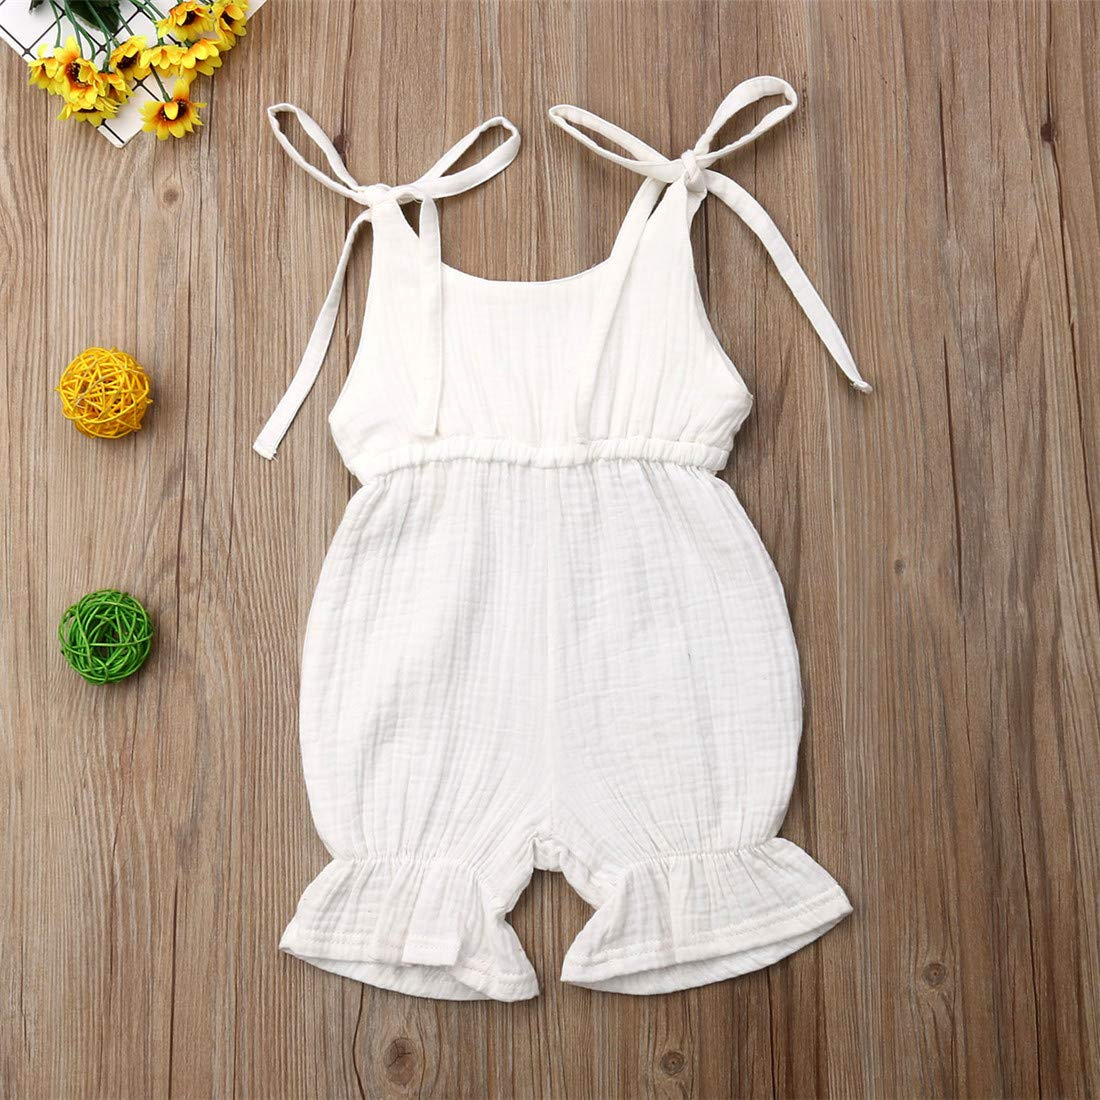 FUFUCAILLM Infant Toddler Baby Girl Cotton Romper Solid Sleeveless Ruffle Short Pants Jumpsuit Overall Outfit Clothes